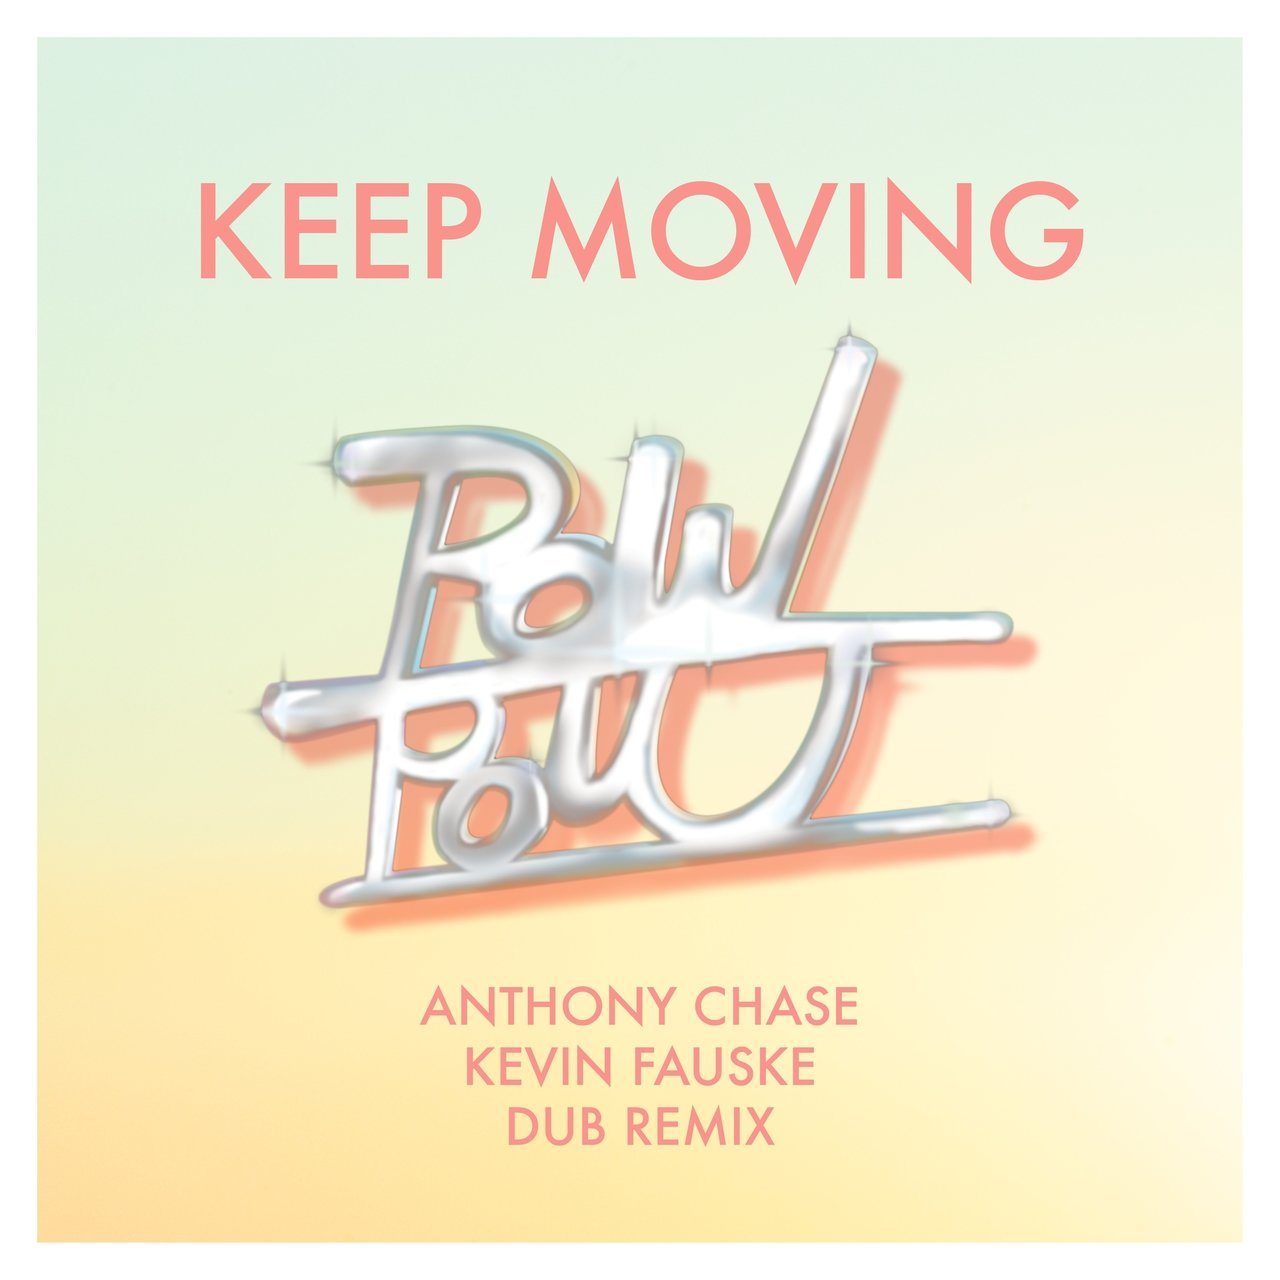 Keep Moving (Anthony Chase & Kevin Fauske Dub Remix)